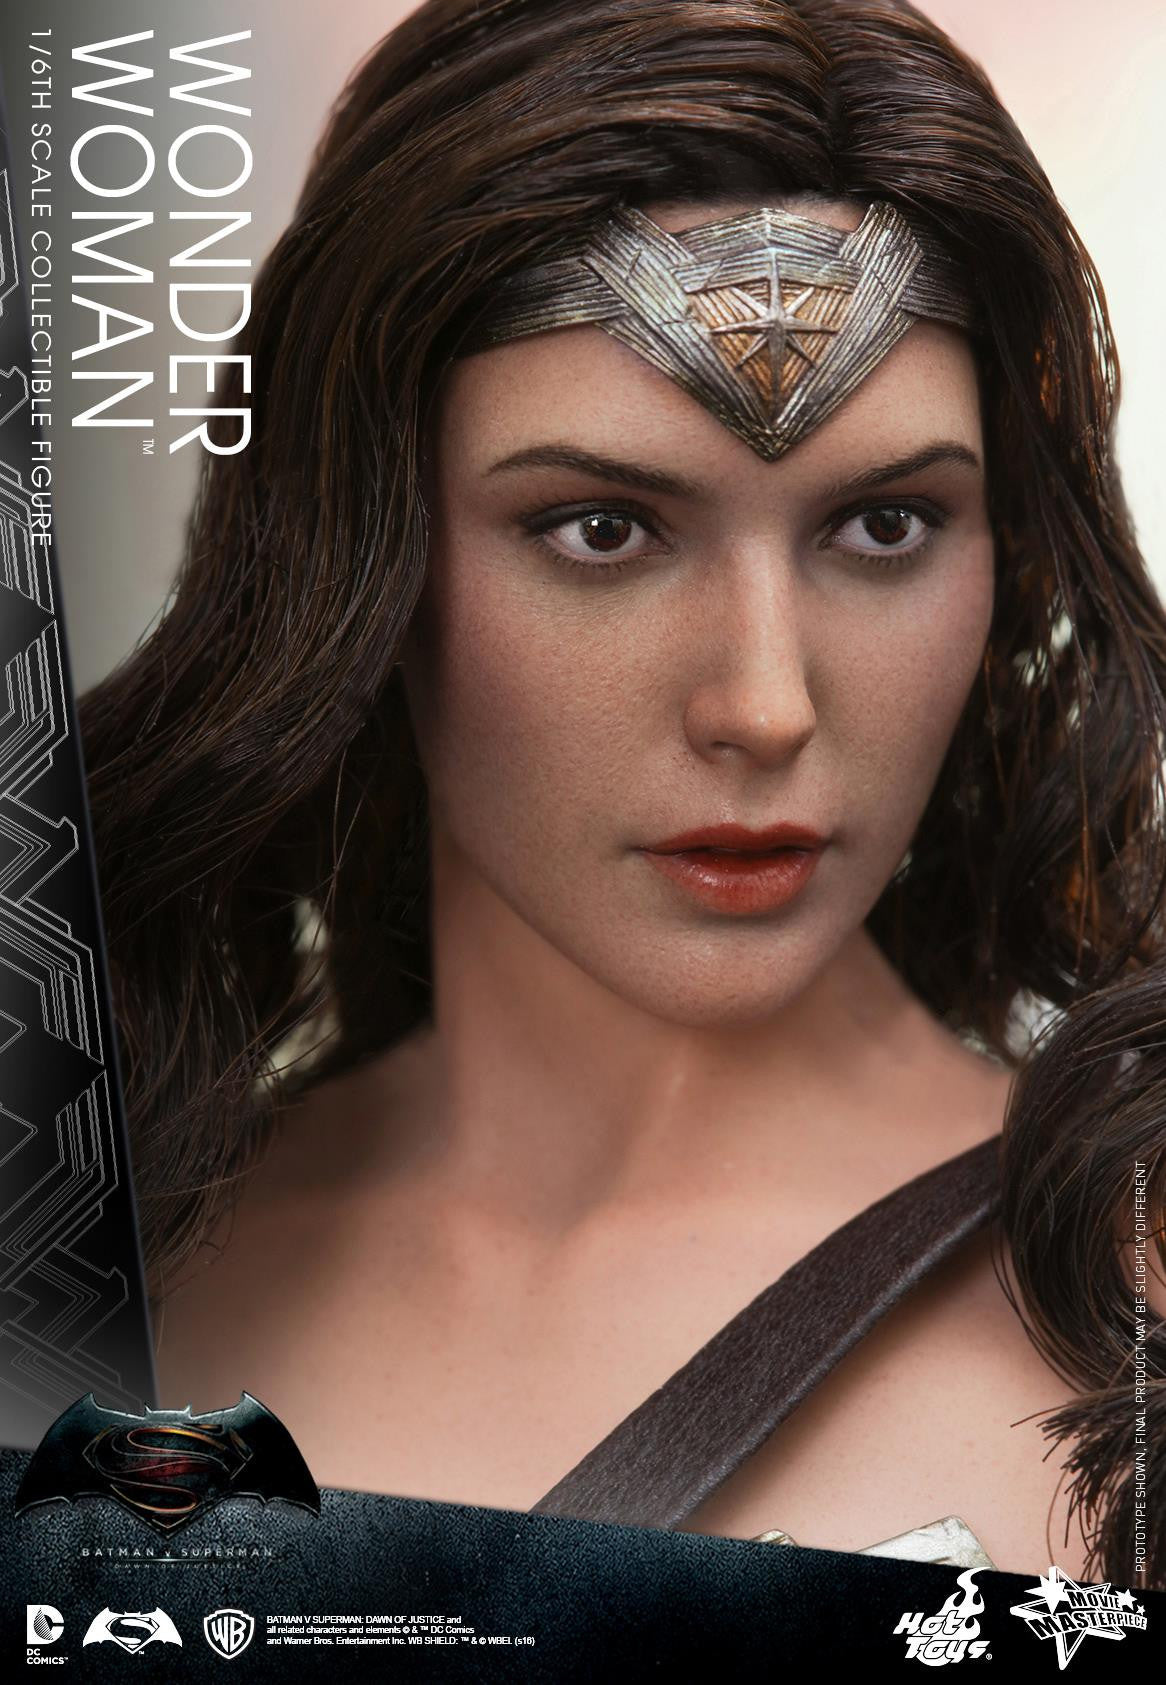 Hot Toys - Batman v Superman: Dawn of Justice - Wonder Woman MMS359 - Marvelous Toys - 9